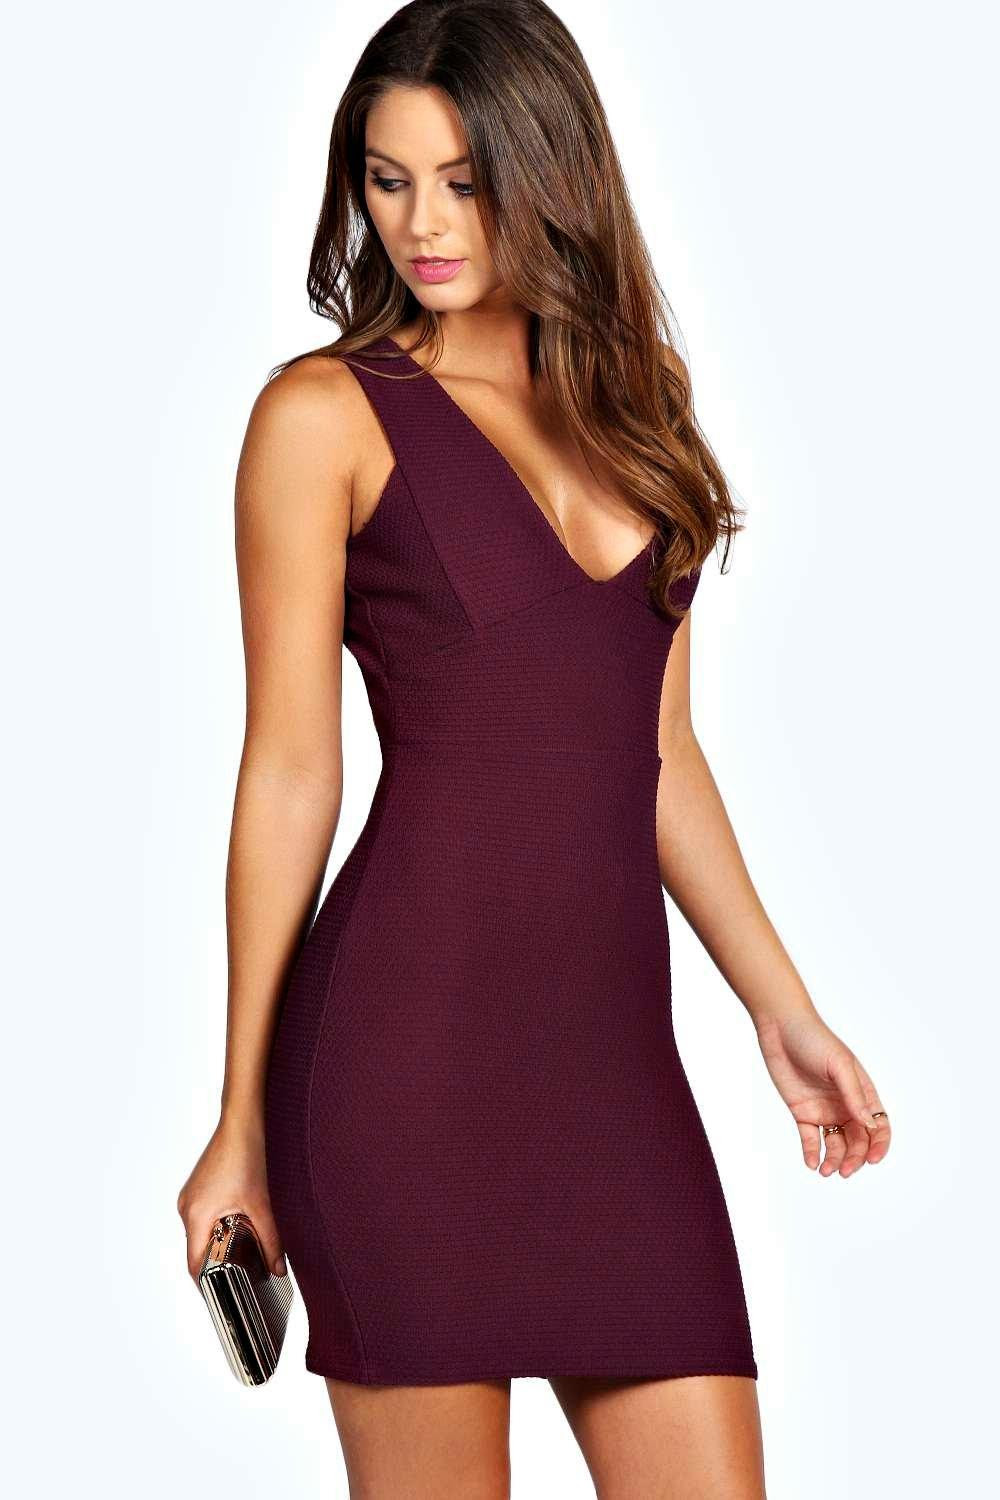 Types water dress body of on bodycon different purple for wedding